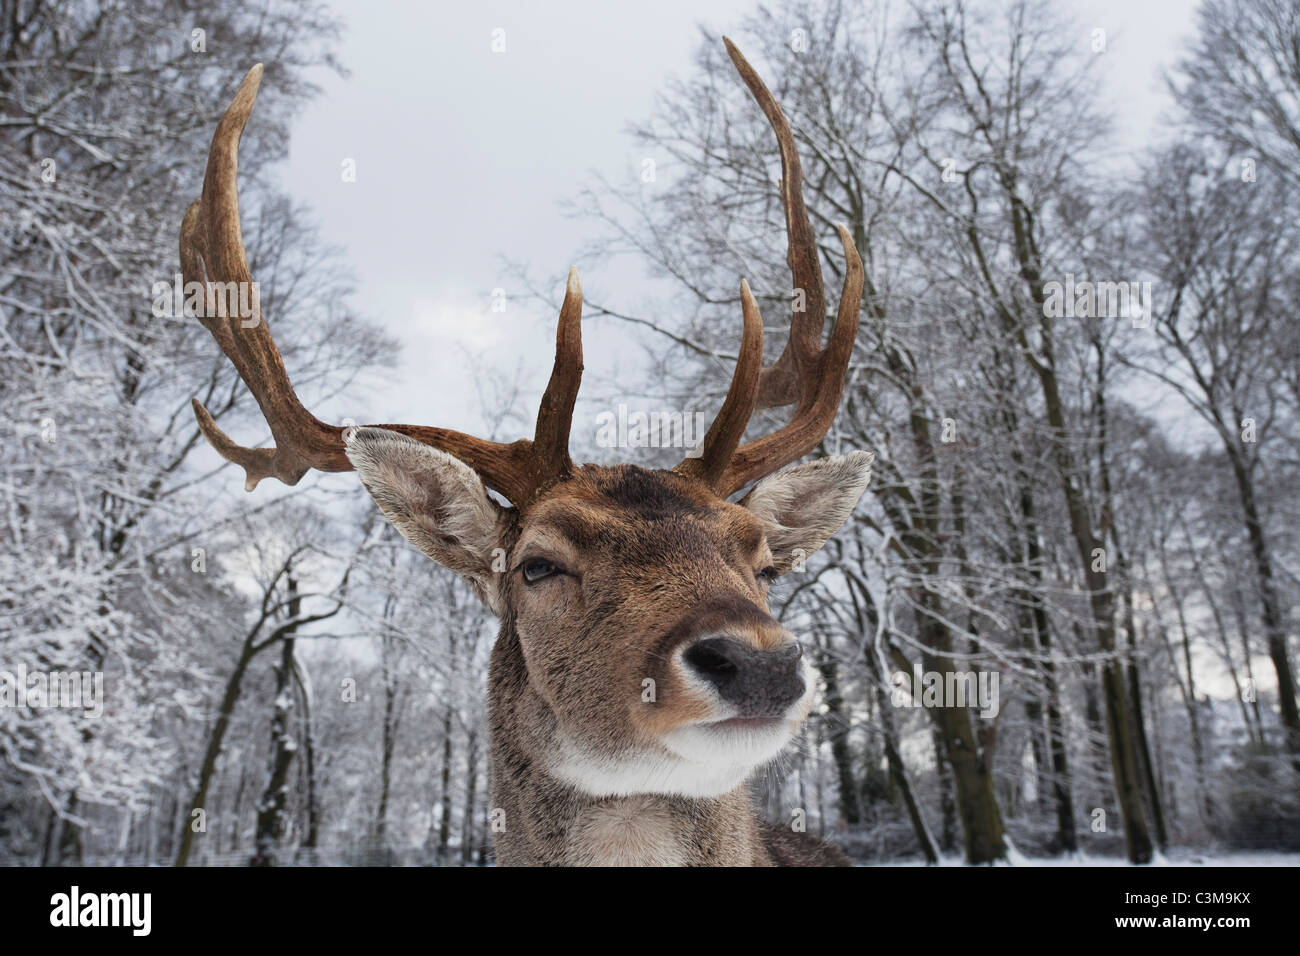 Germany, Cologne, Animal Reserve, Male fallow deer at lindenthaler tierpark - Stock Image